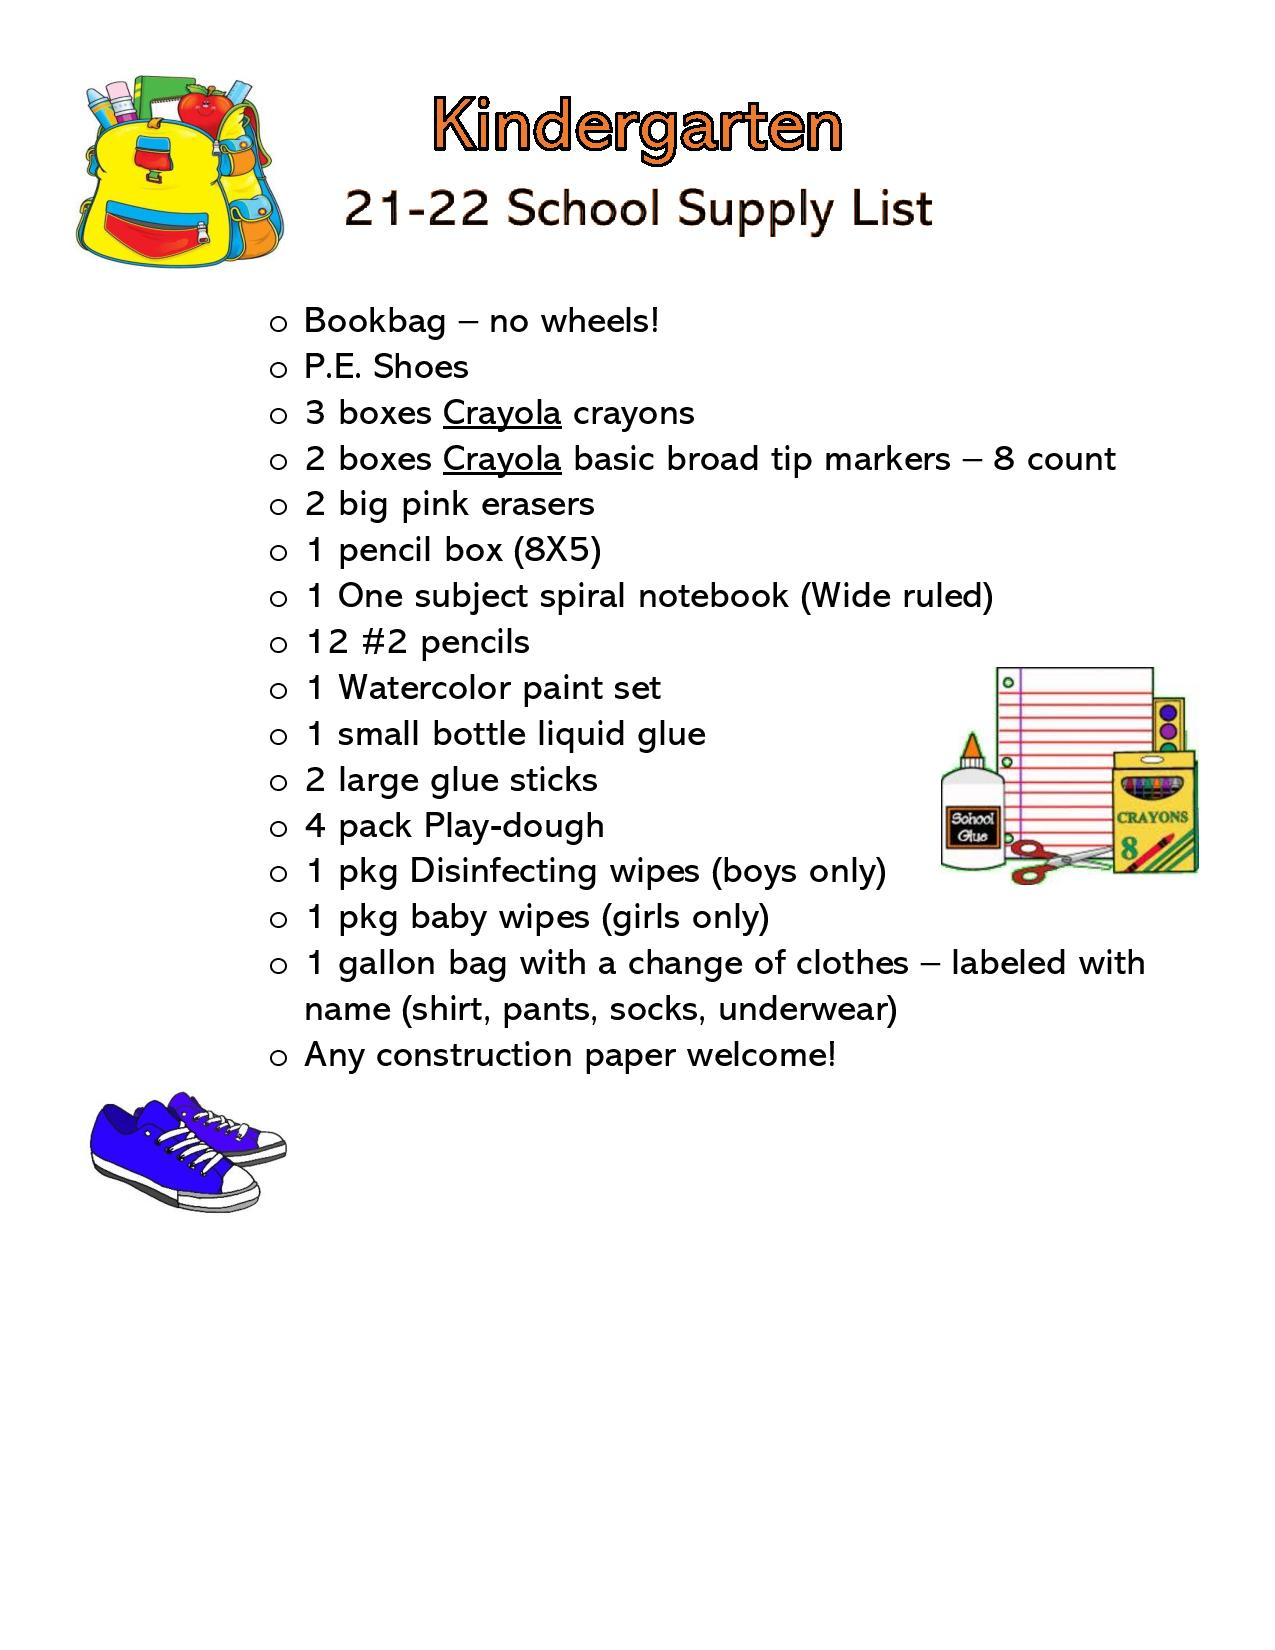 Click here for the Kindergarten supply list